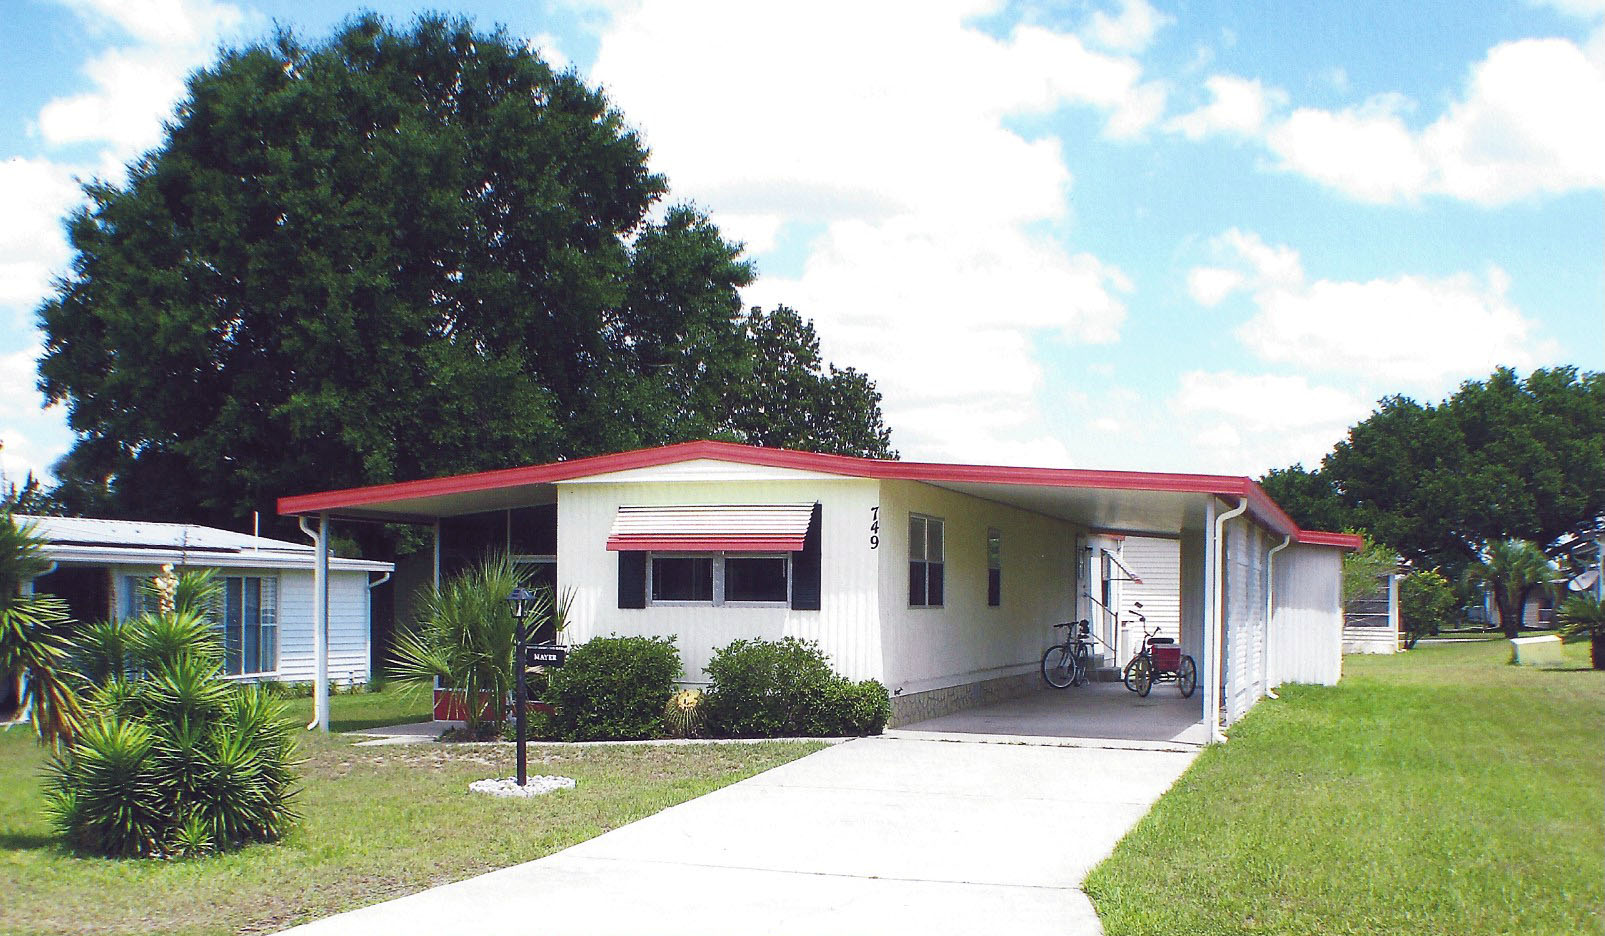 fl-front-house-carport-edit-flatten-1-2015-jpg